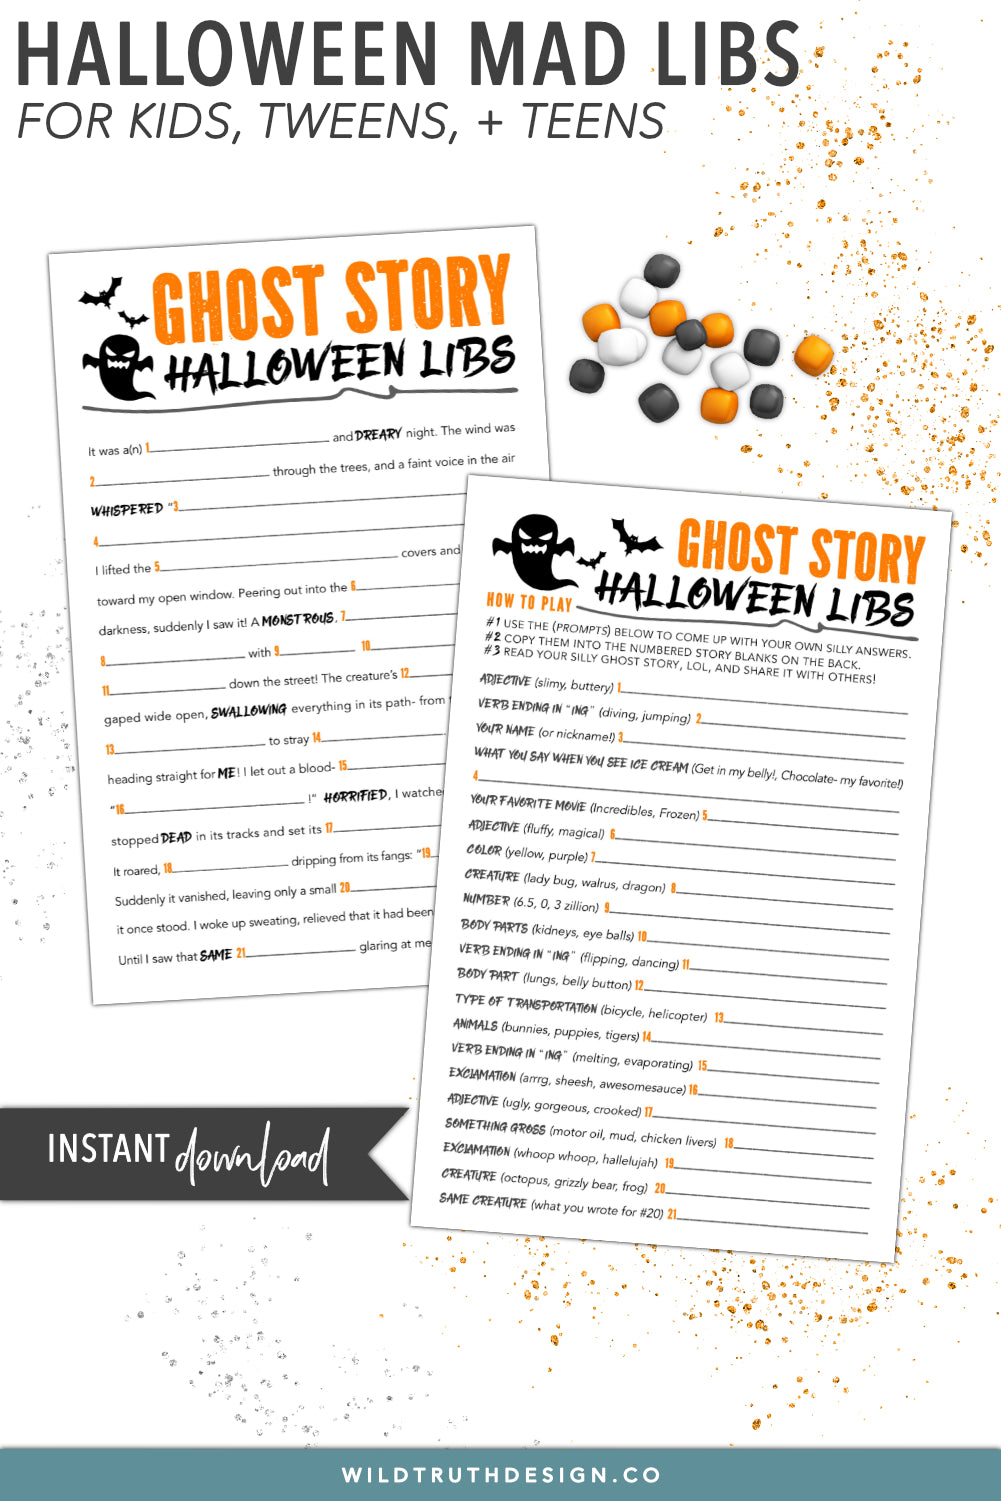 halloween mad libs for kids, tweens, teens